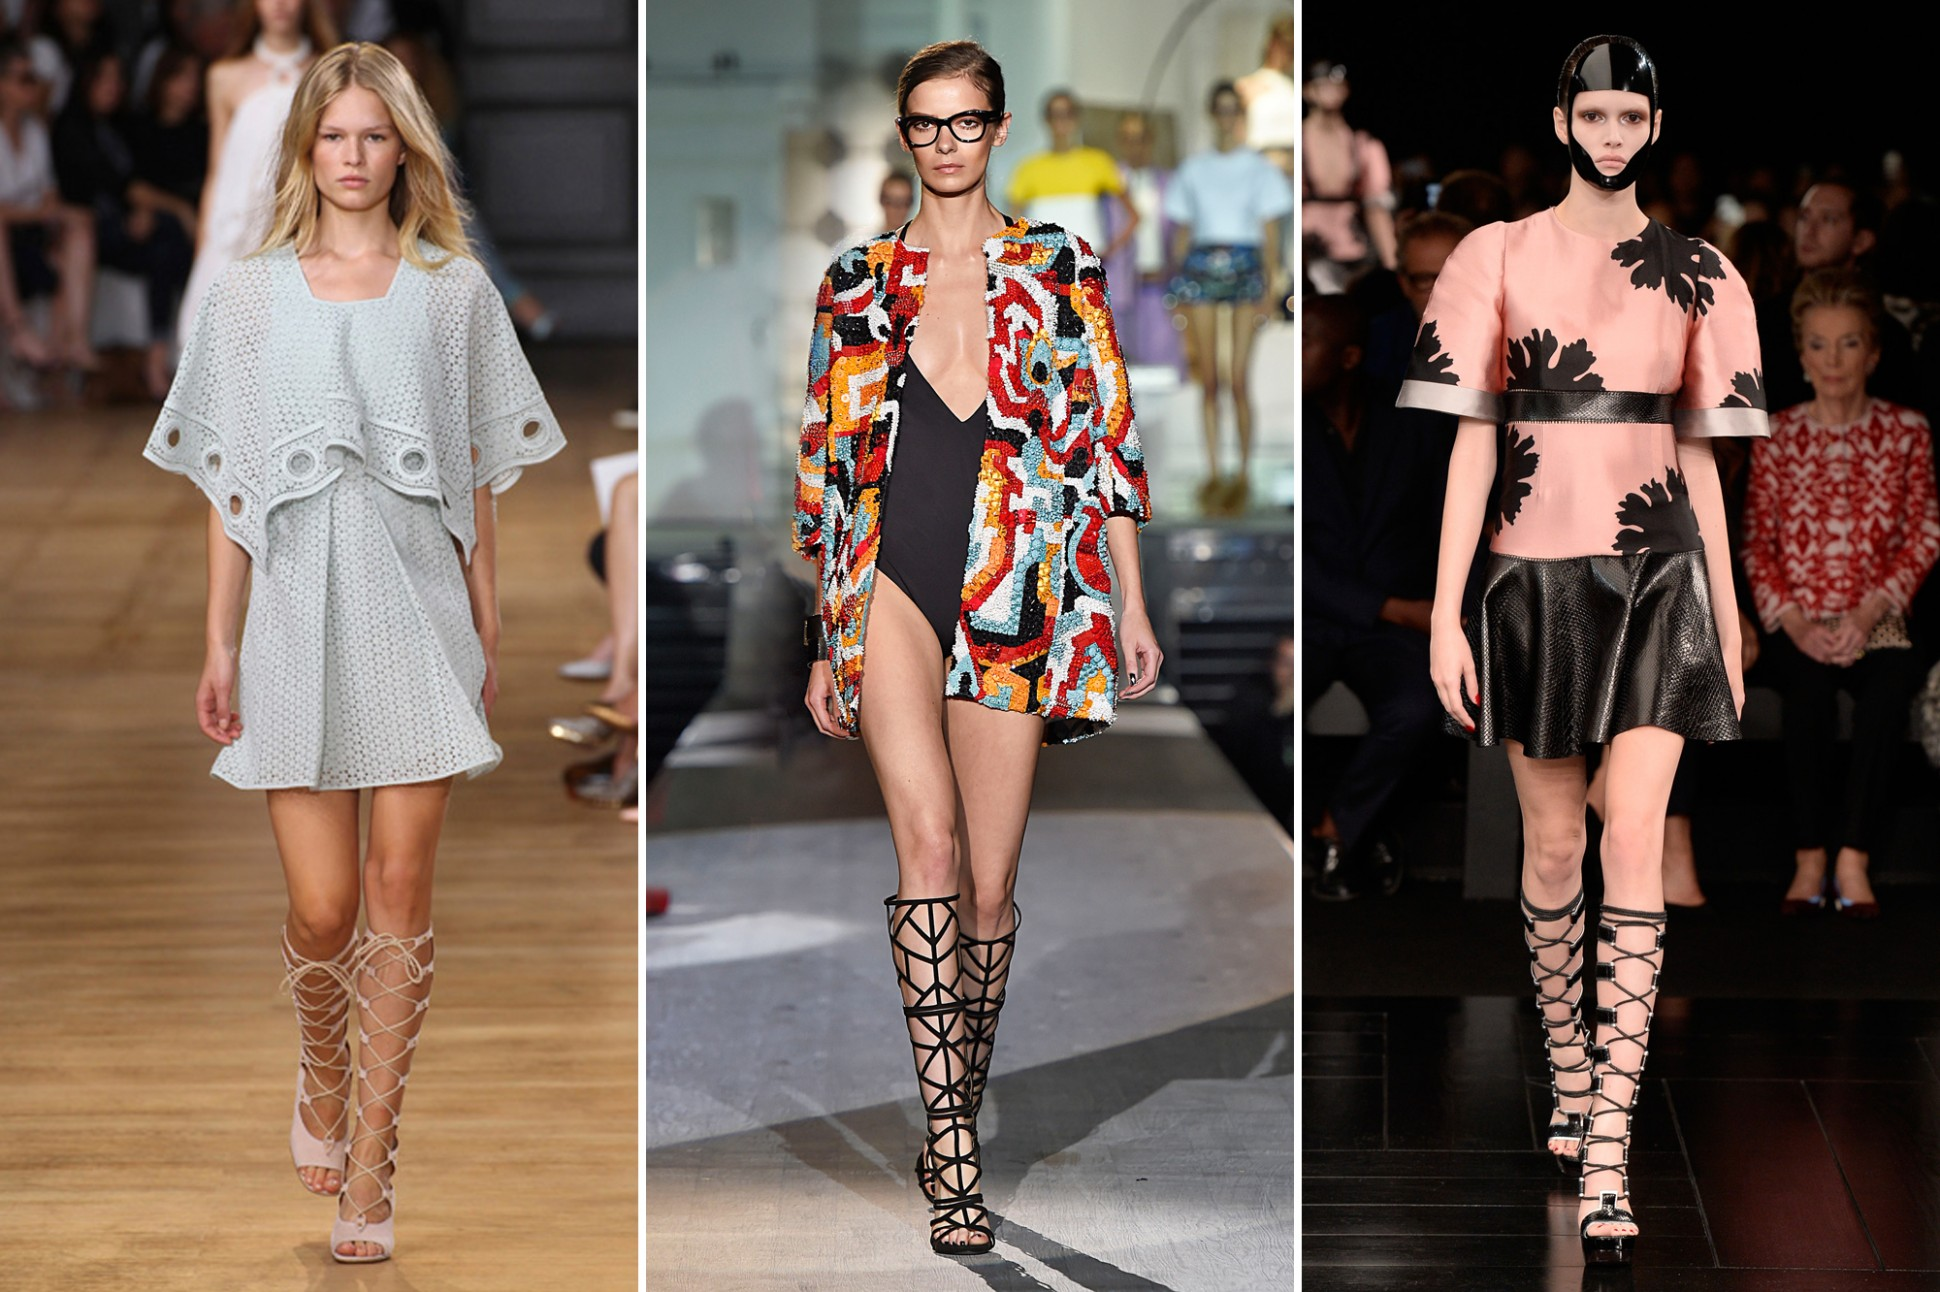 Gladiator Sandals Trend For 2015 Spring And Summer The